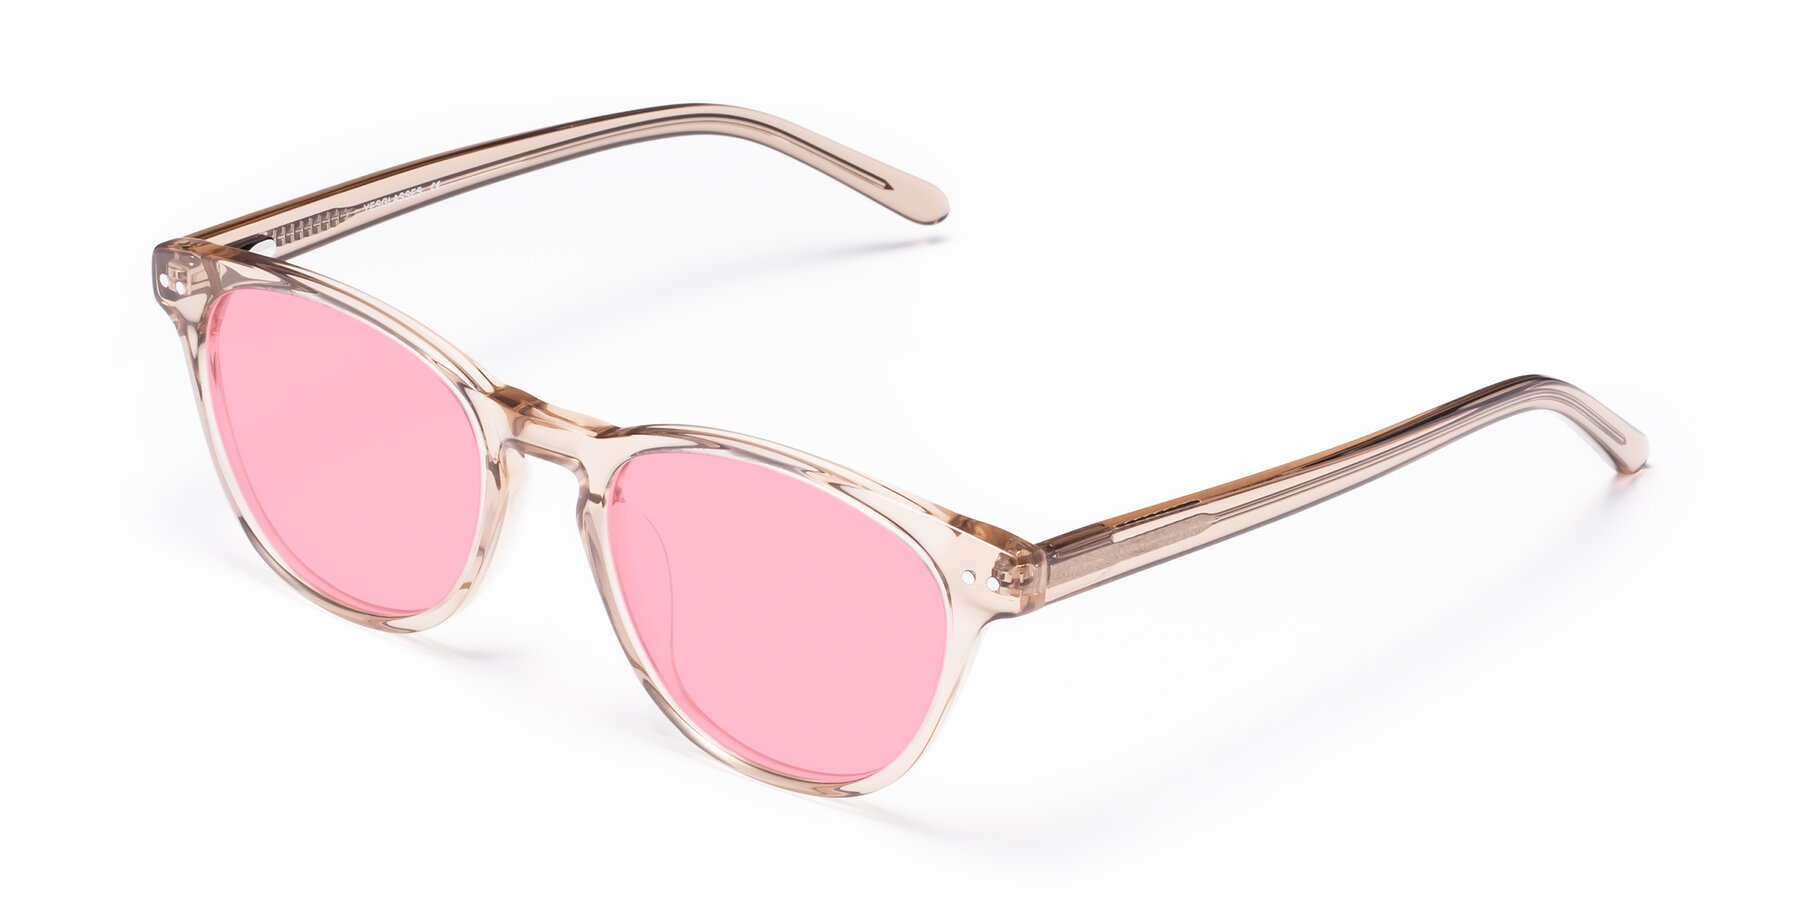 Angle of Blaze in light Brown with Medium Pink Tinted Lenses